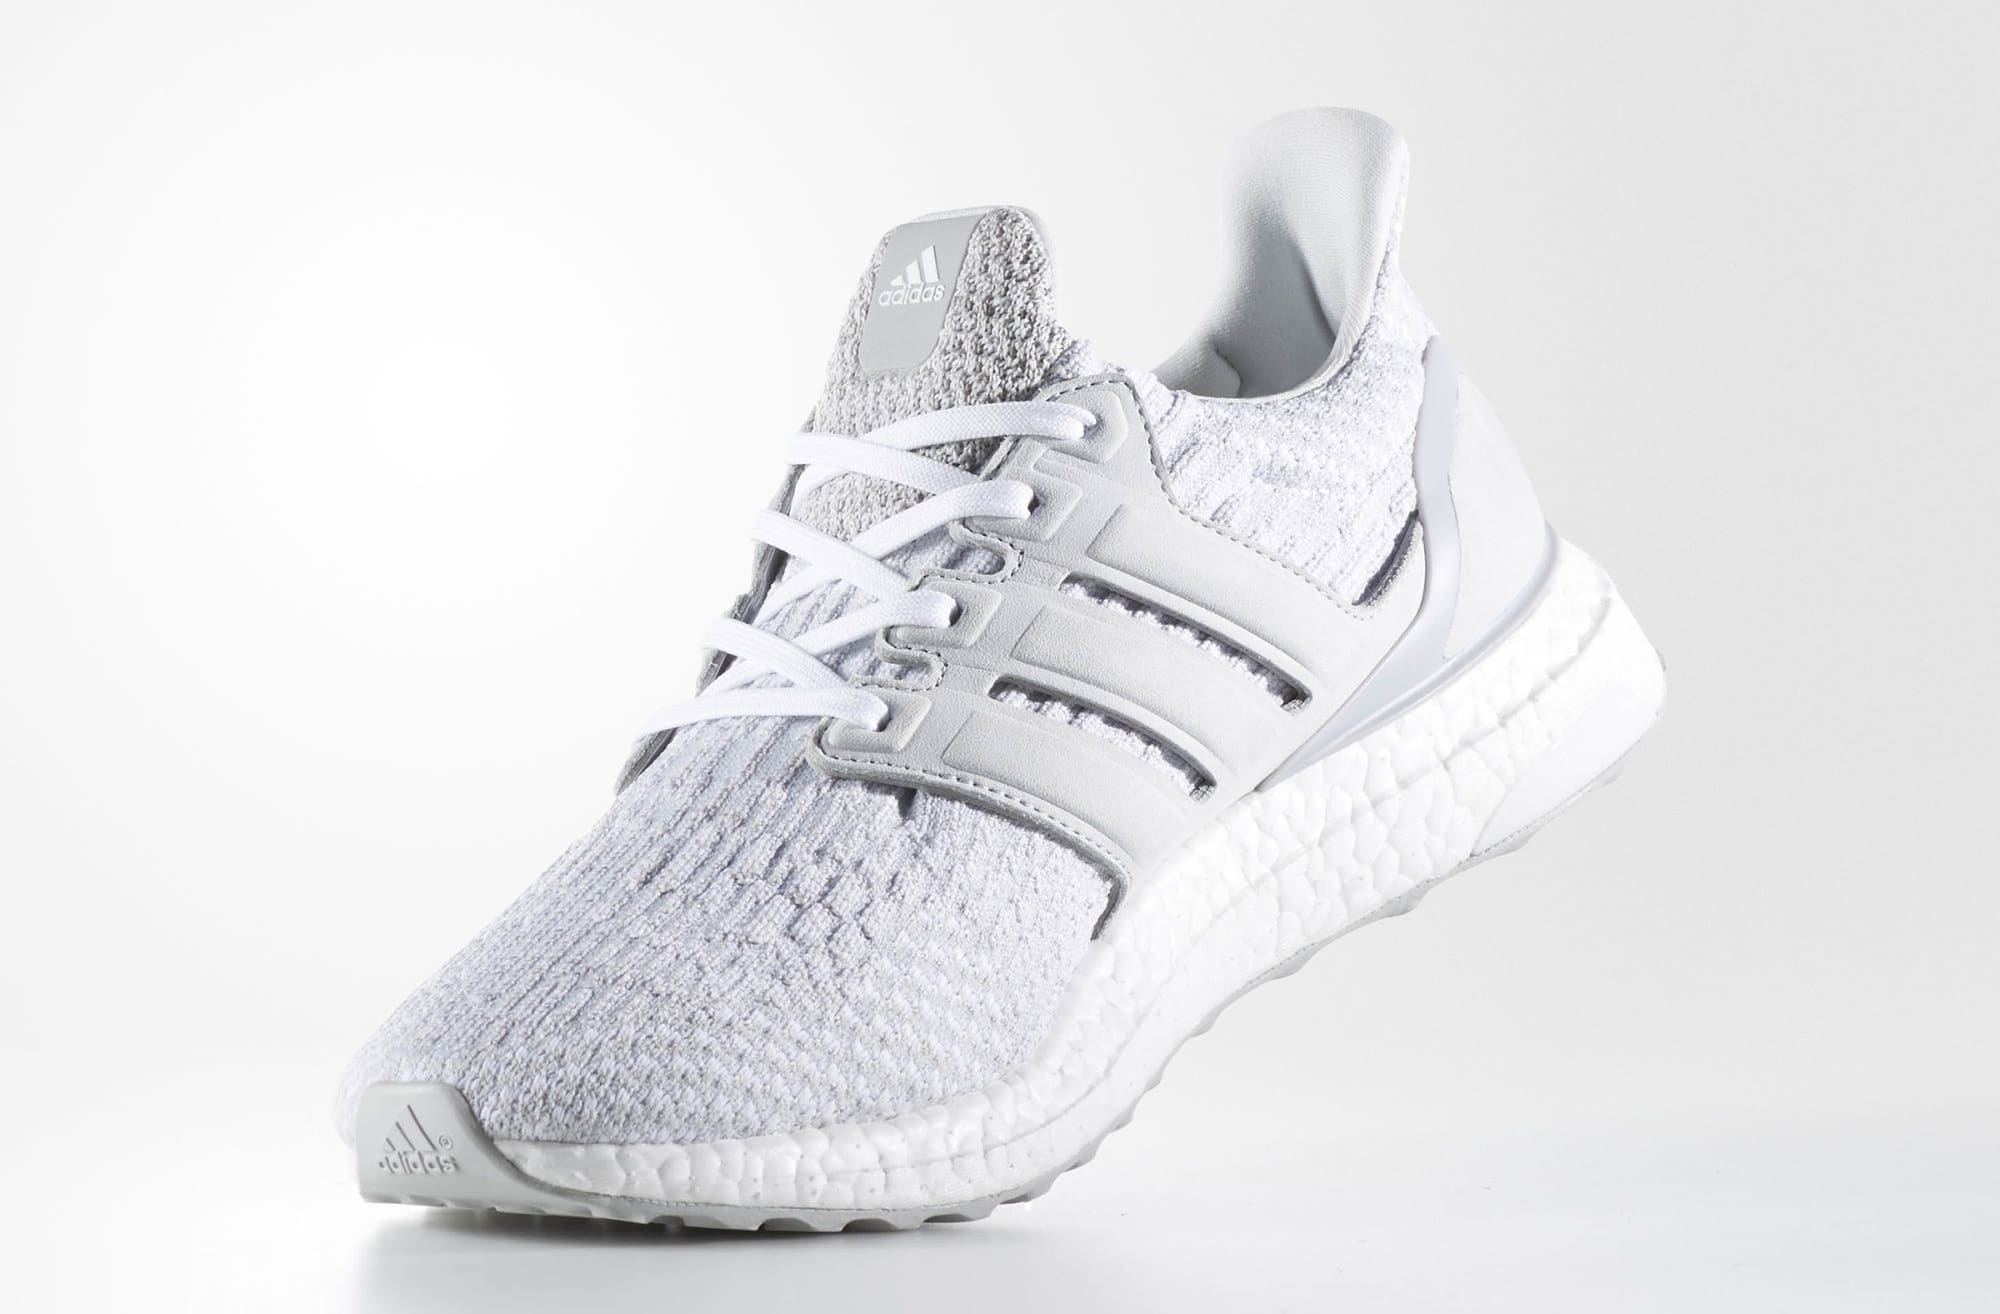 adidas X Reigning Champ - UltraBOOST 3.0  Triple White  Imagens ... 289a1f61ecce2